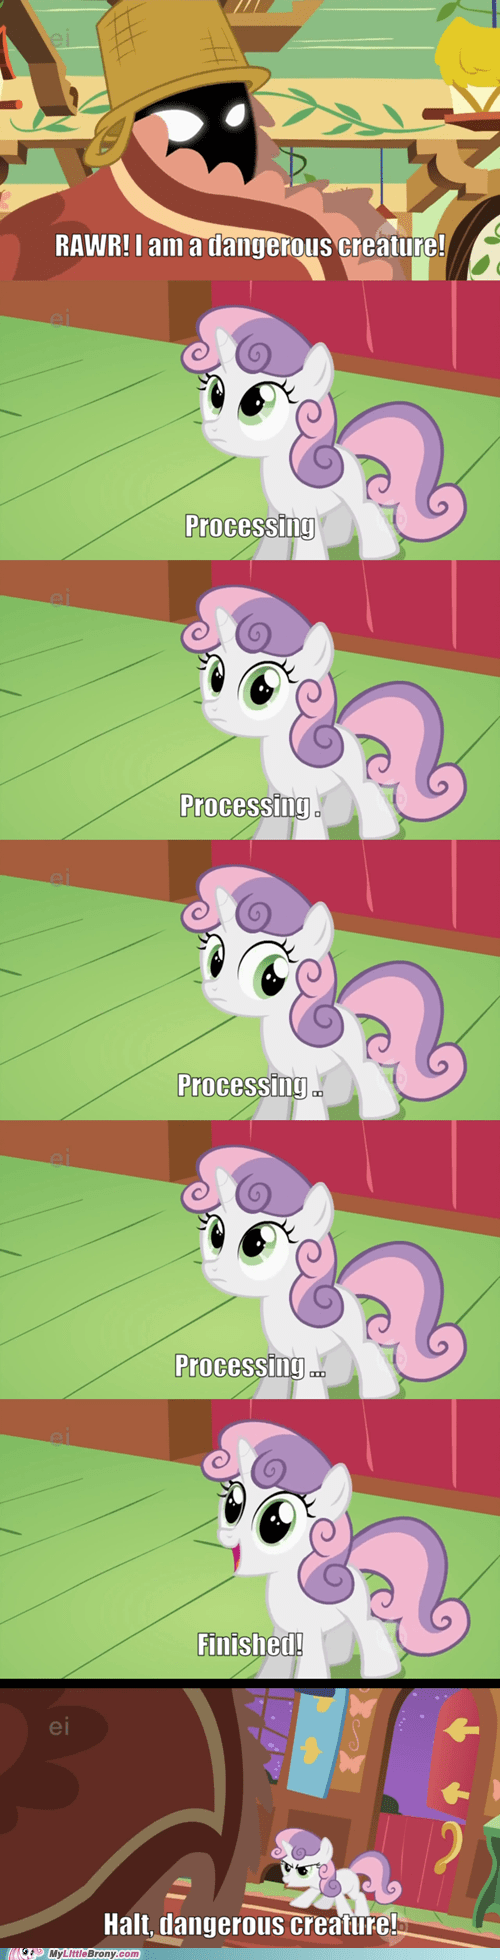 SweetieBelle.exe seems to be taking a long time to respond